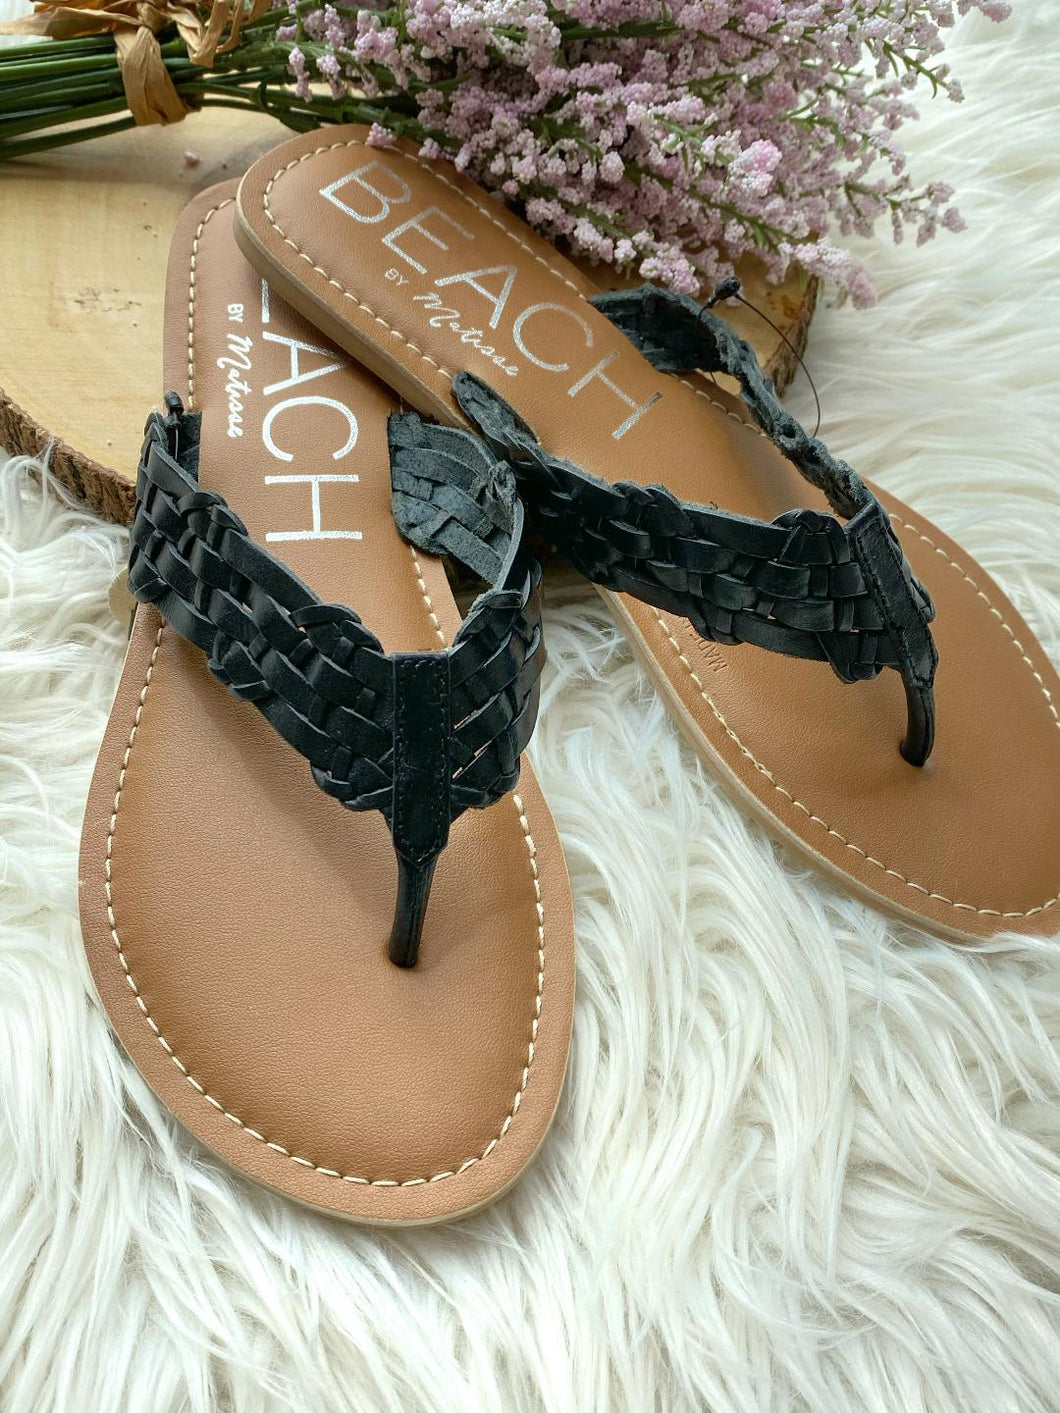 Make Waves Black Sandals